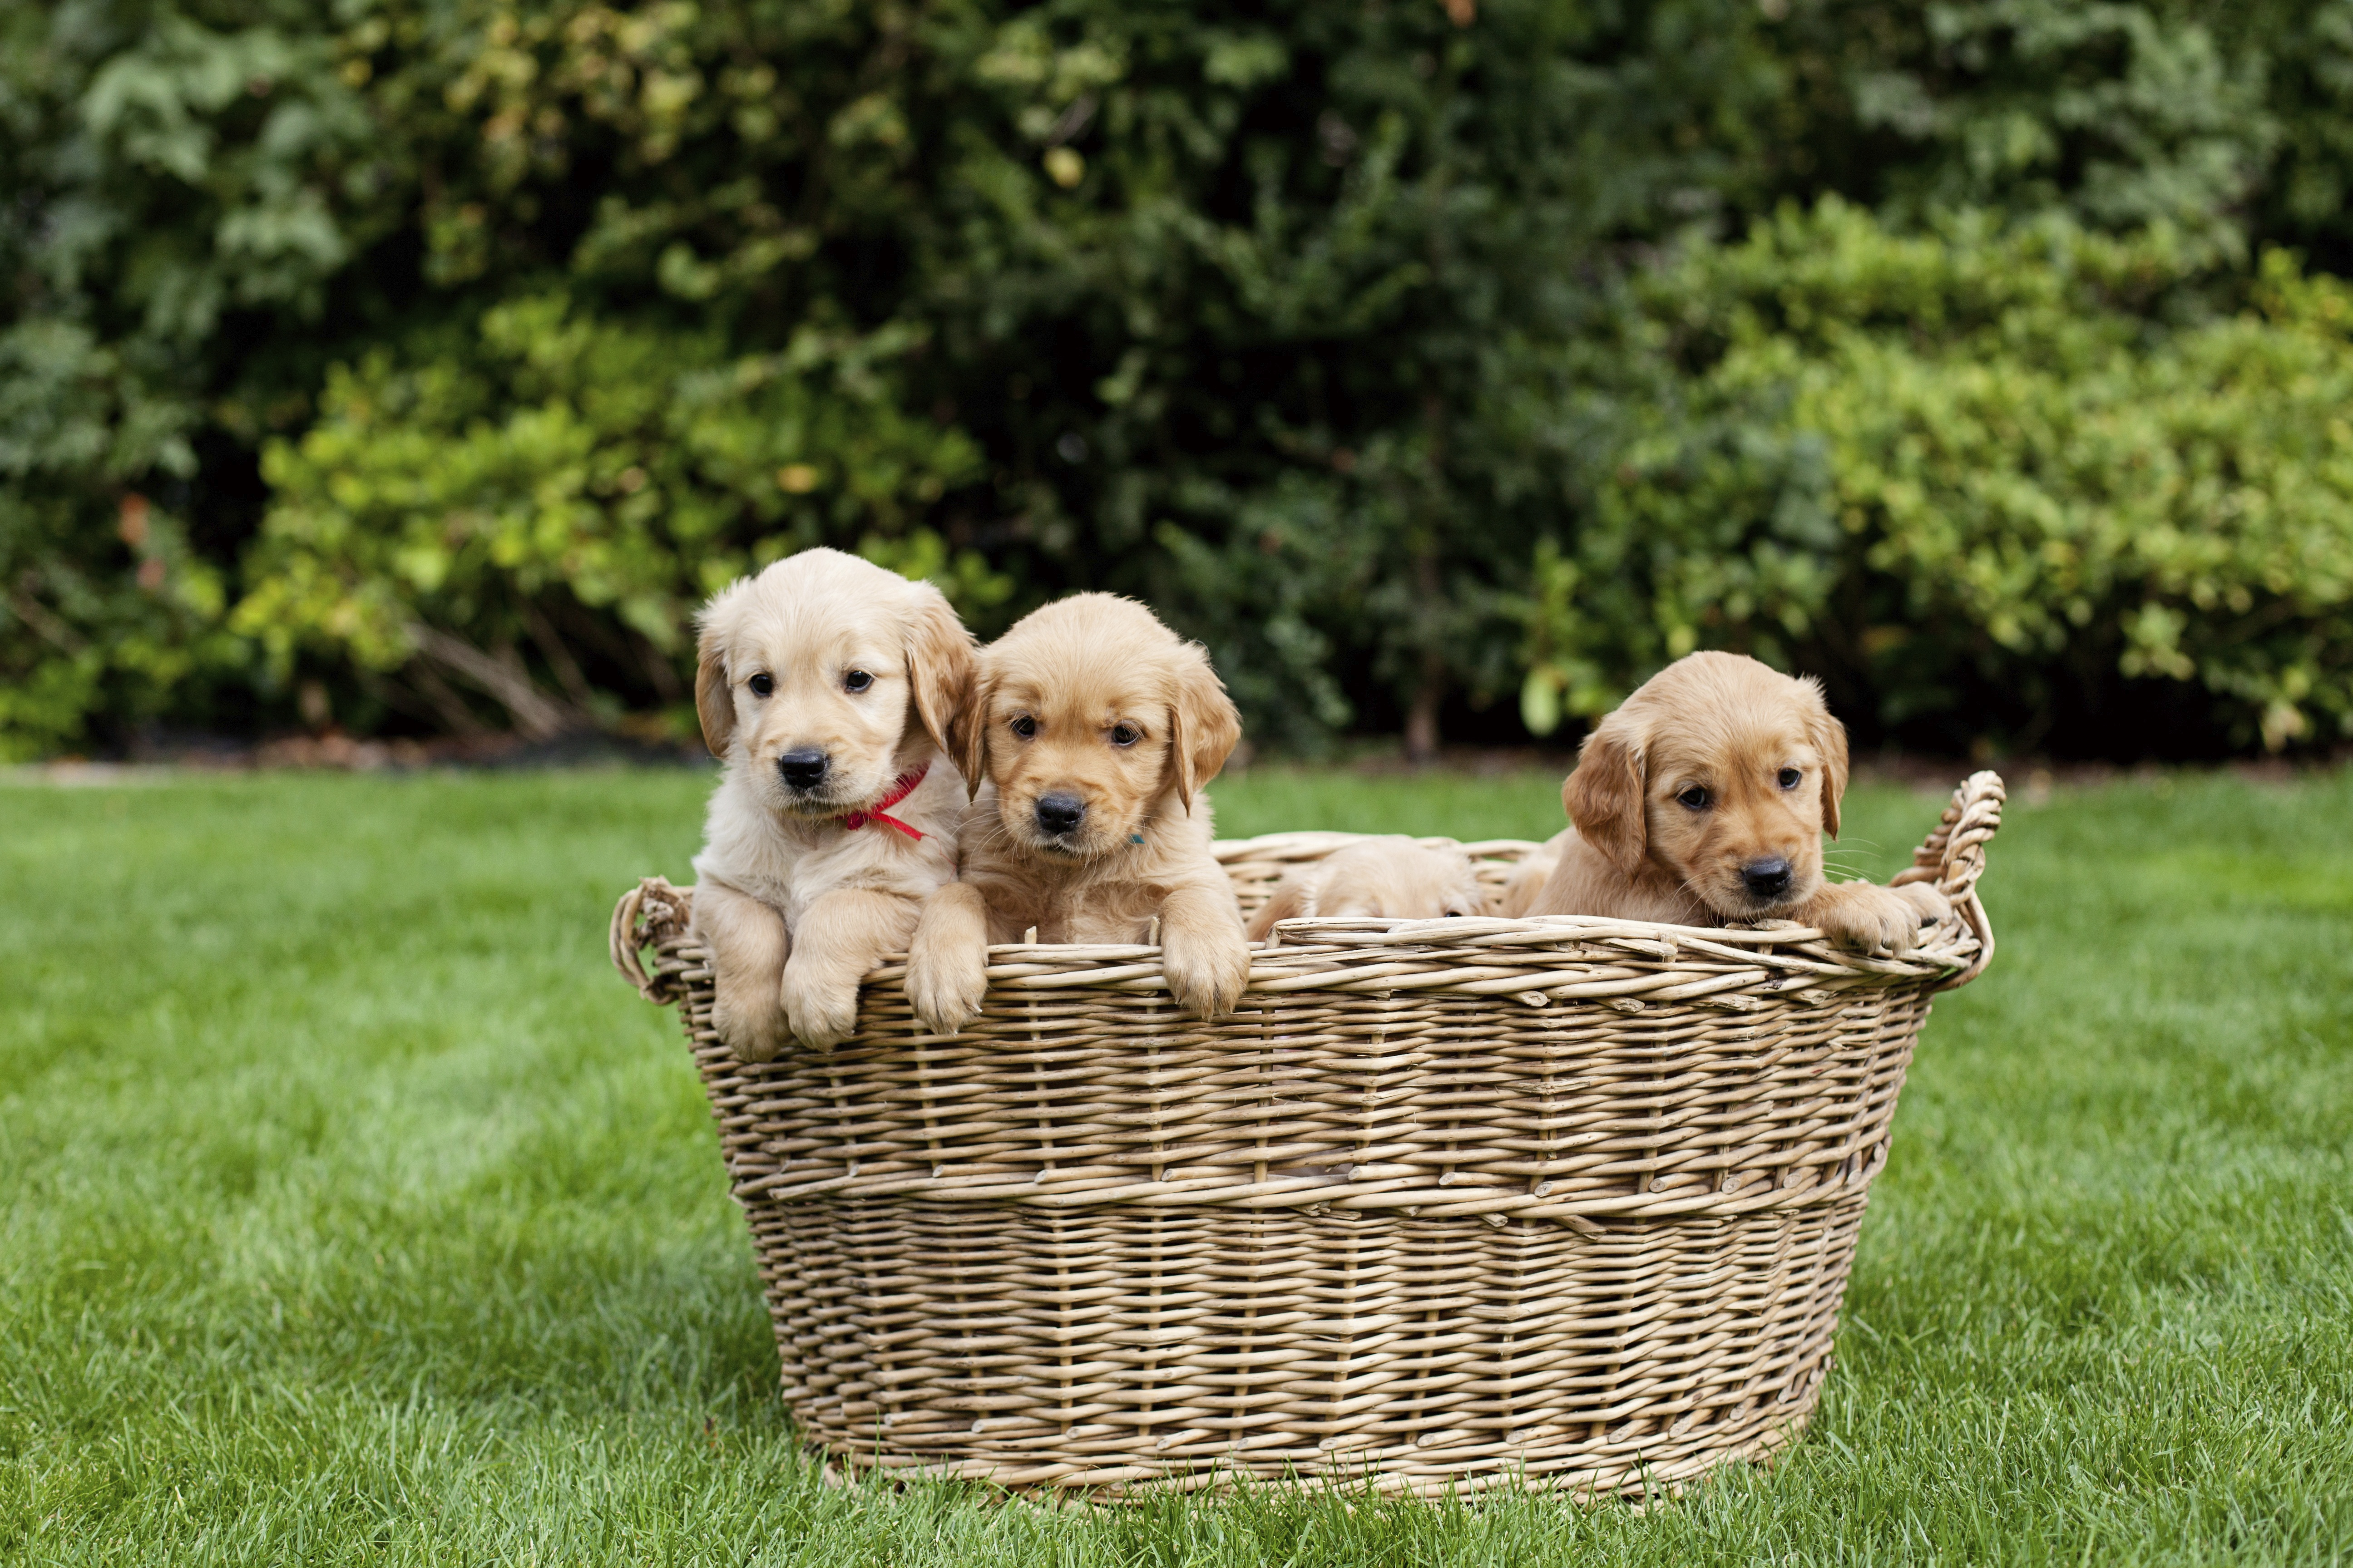 Cubs-of-Golden-Retriever-in-one-basket